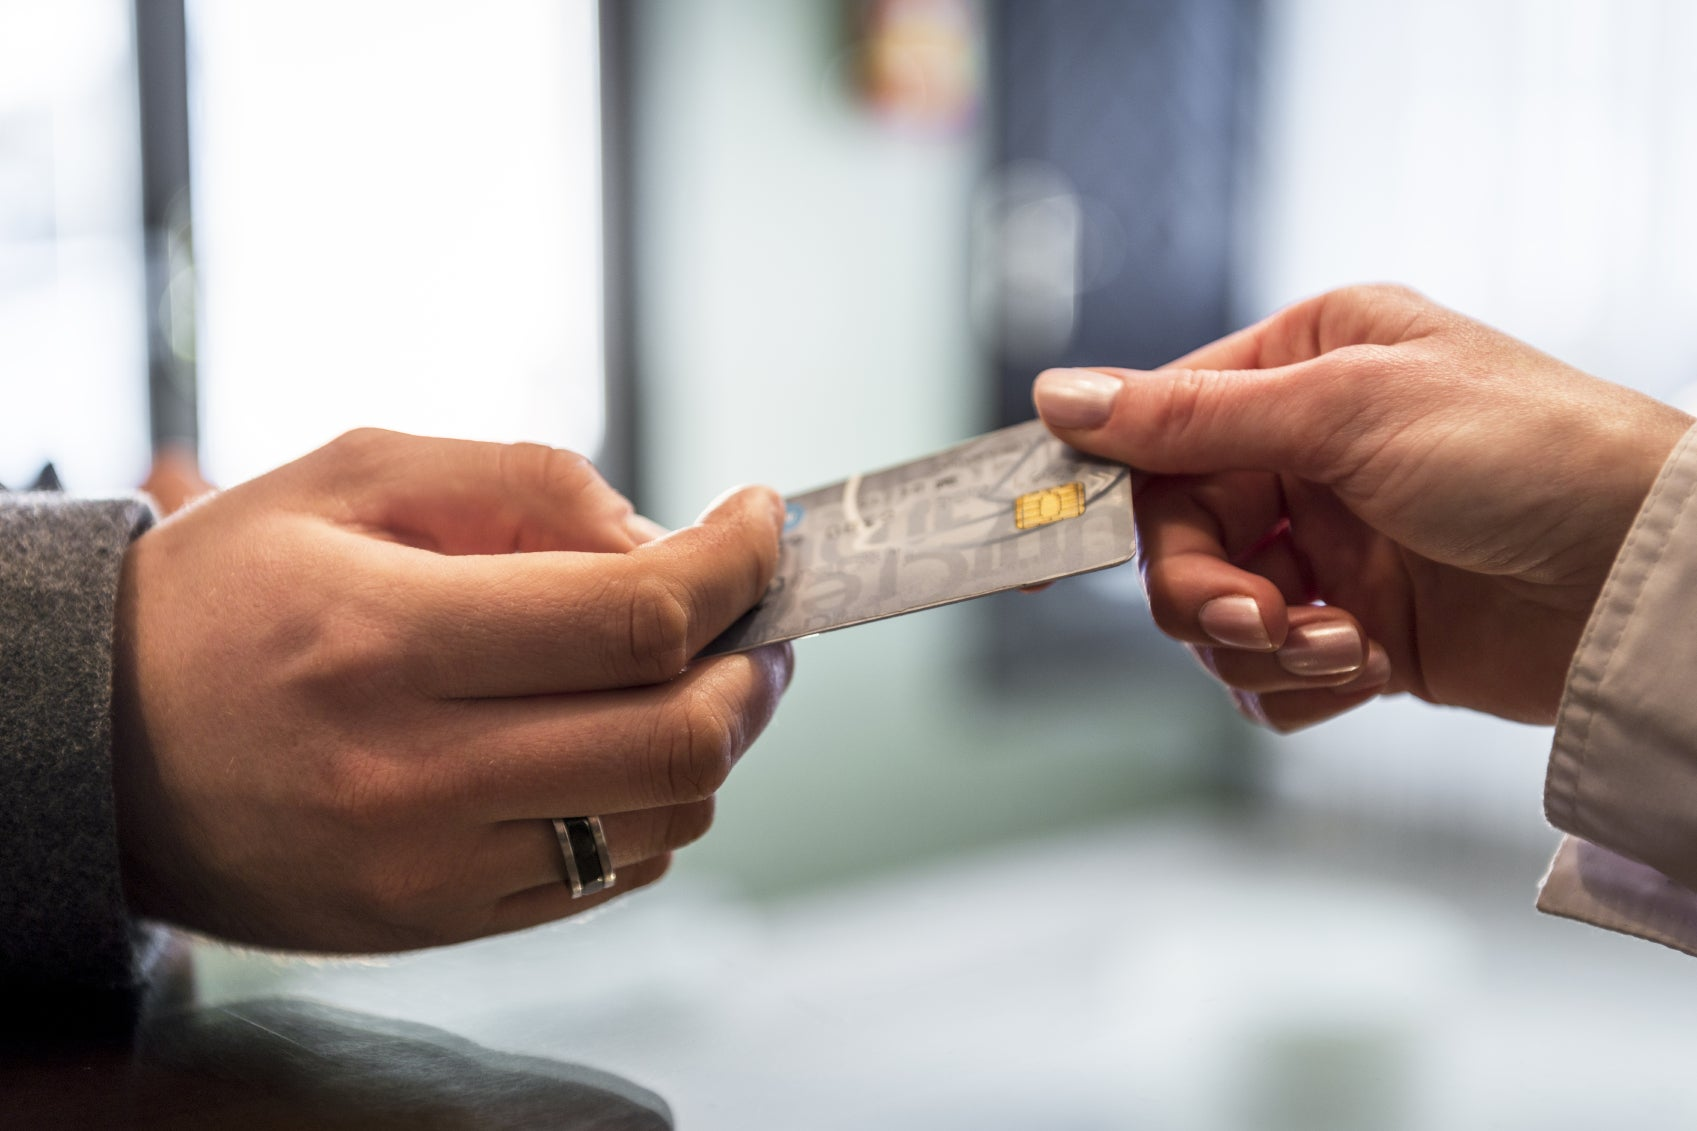 I Admit – I Peek at What Card Folks in Line Are Using (and Cringe When It's Not a Travel Credit Card)